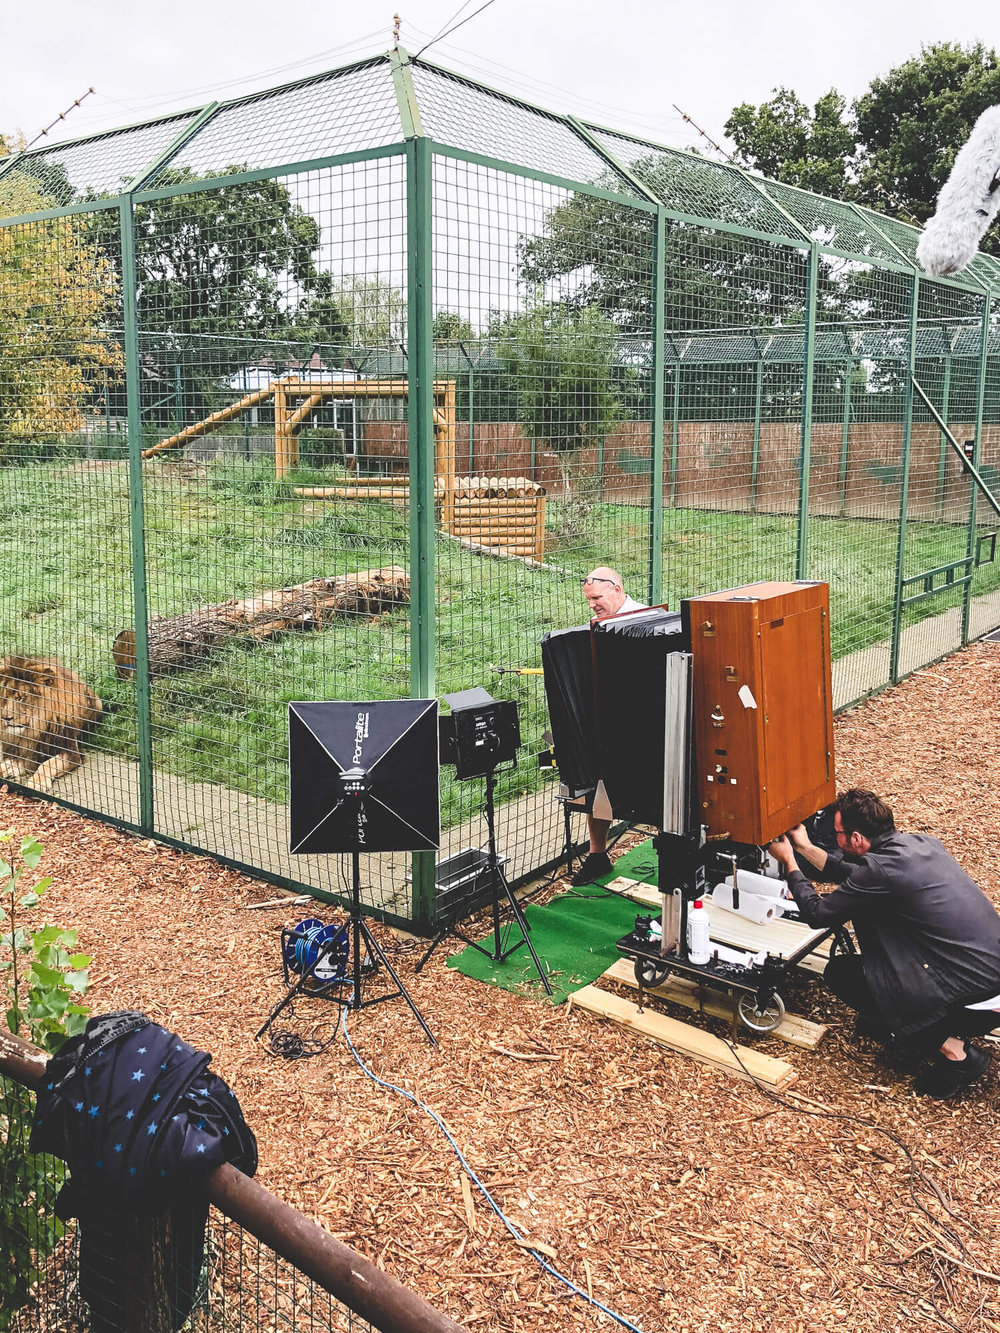 big_cat_sanctuary_©_20x24_studio_berlin-7.jpg